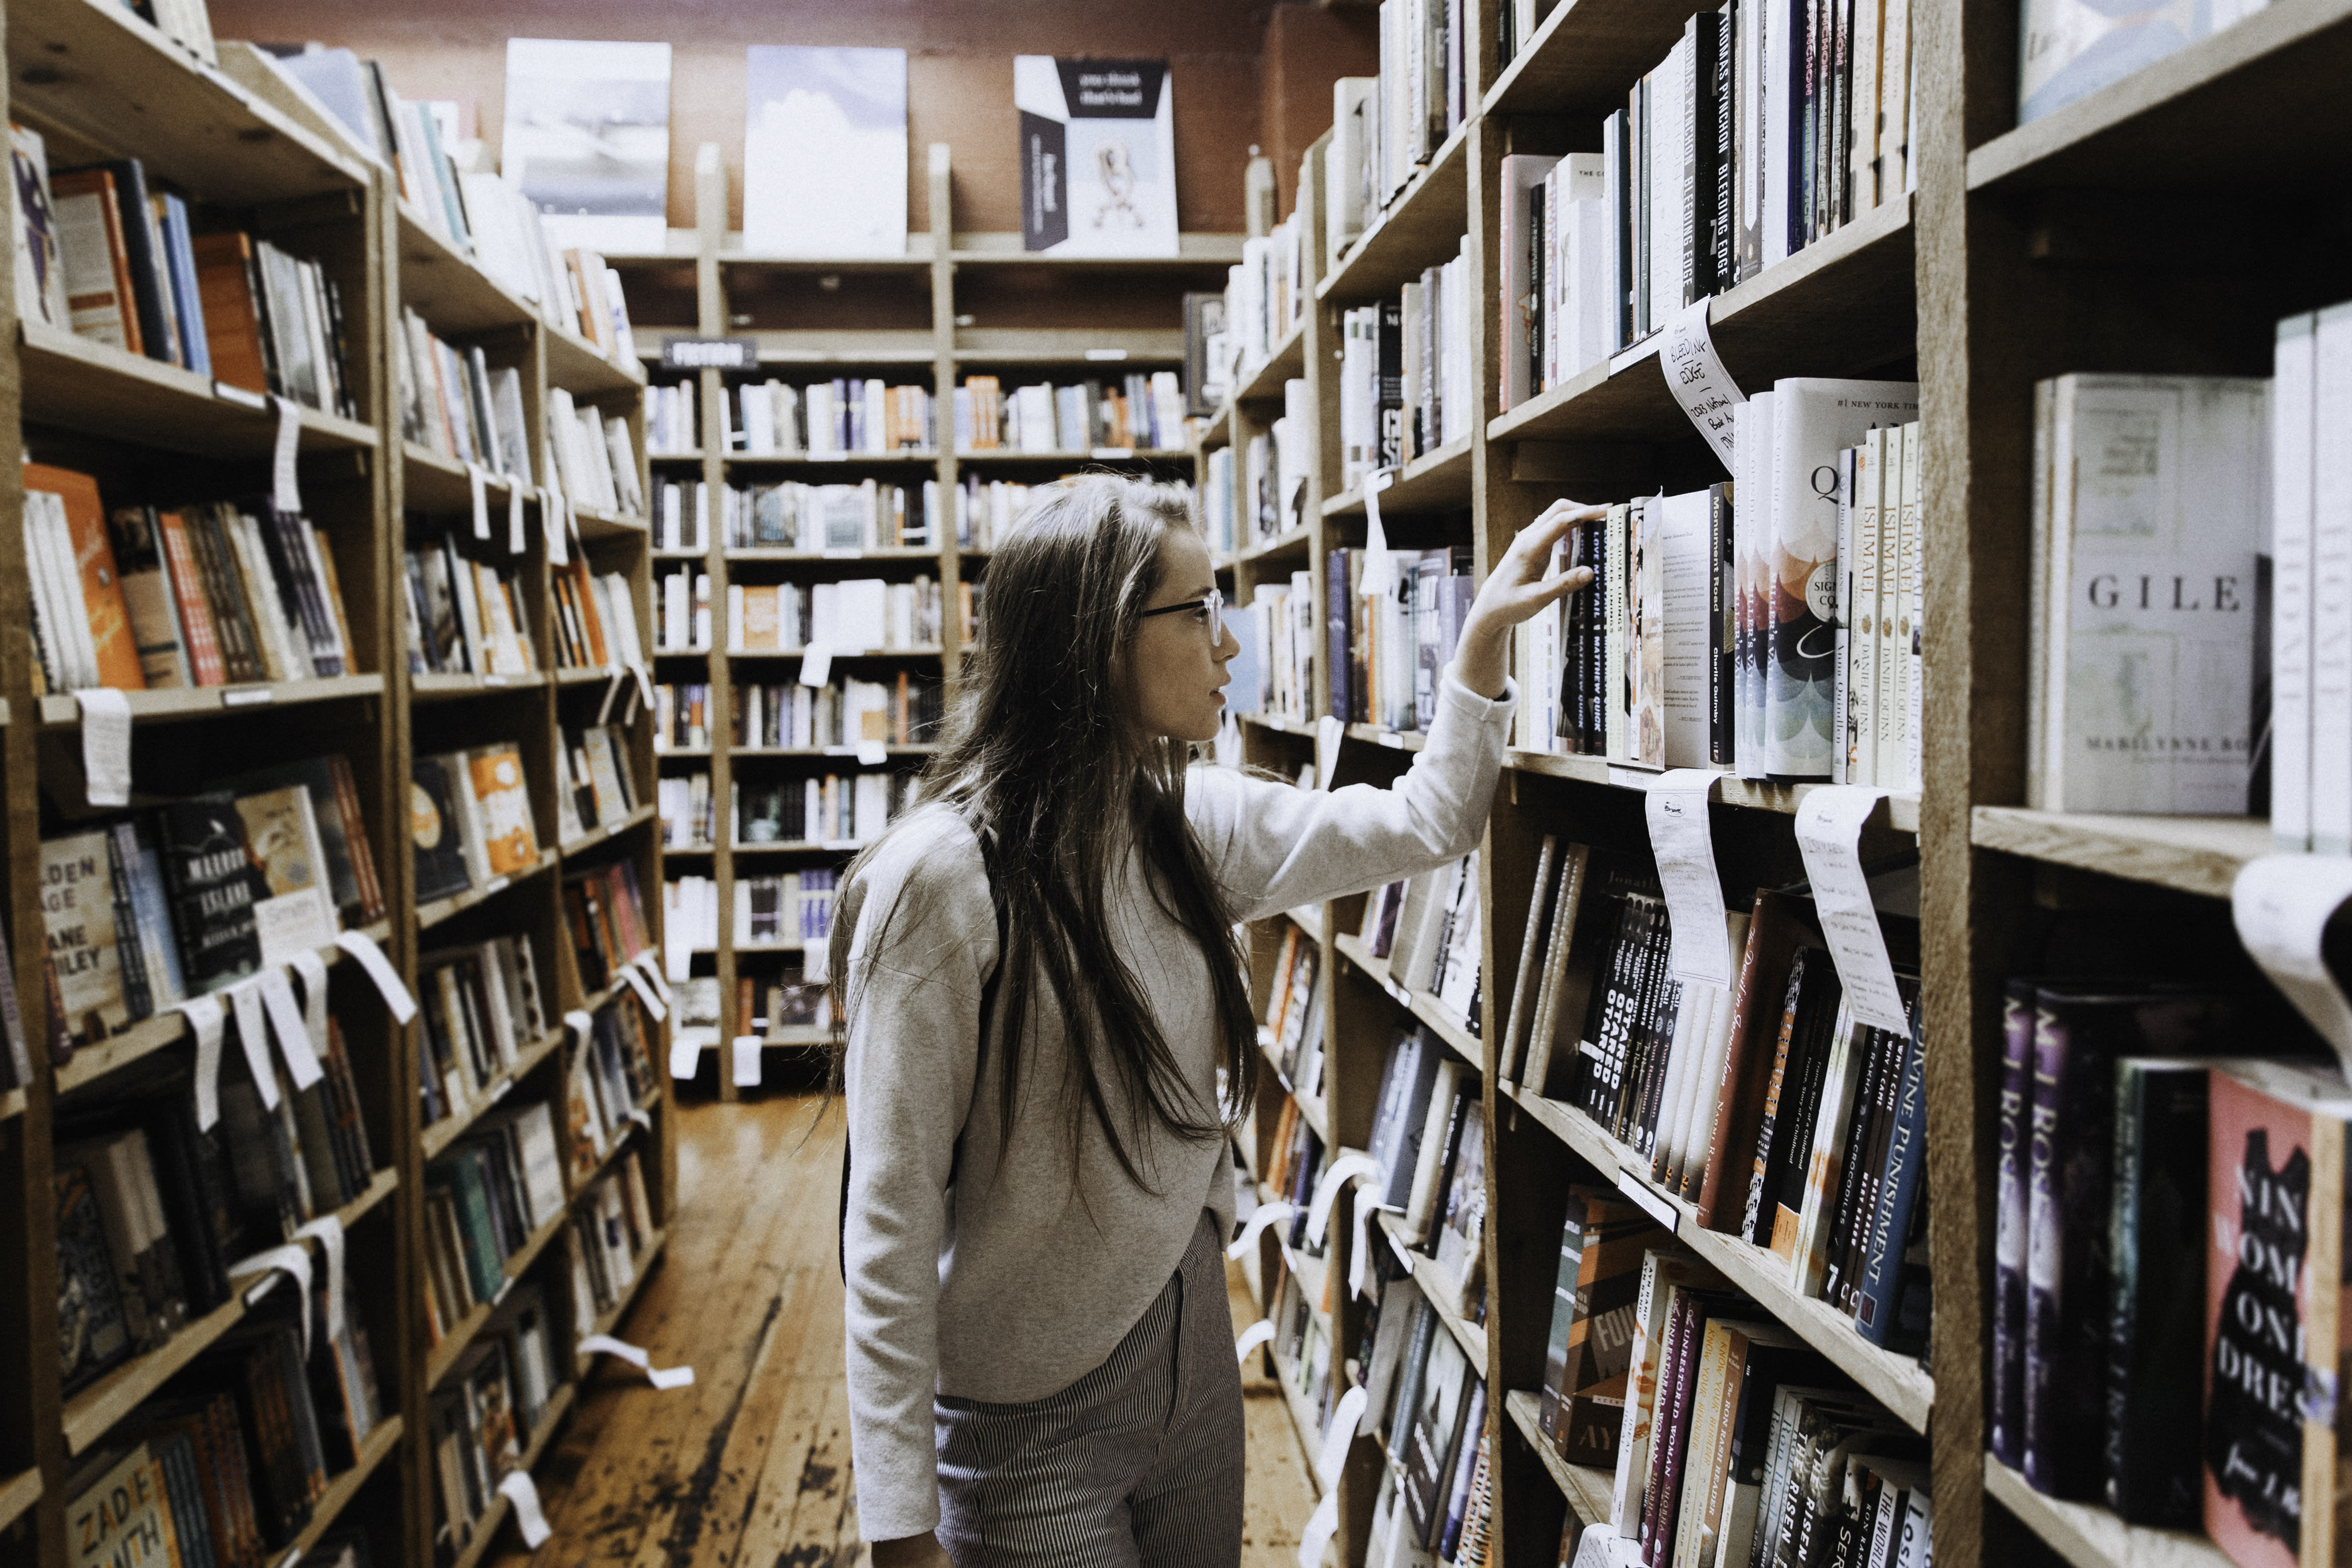 Girl in library looking at books